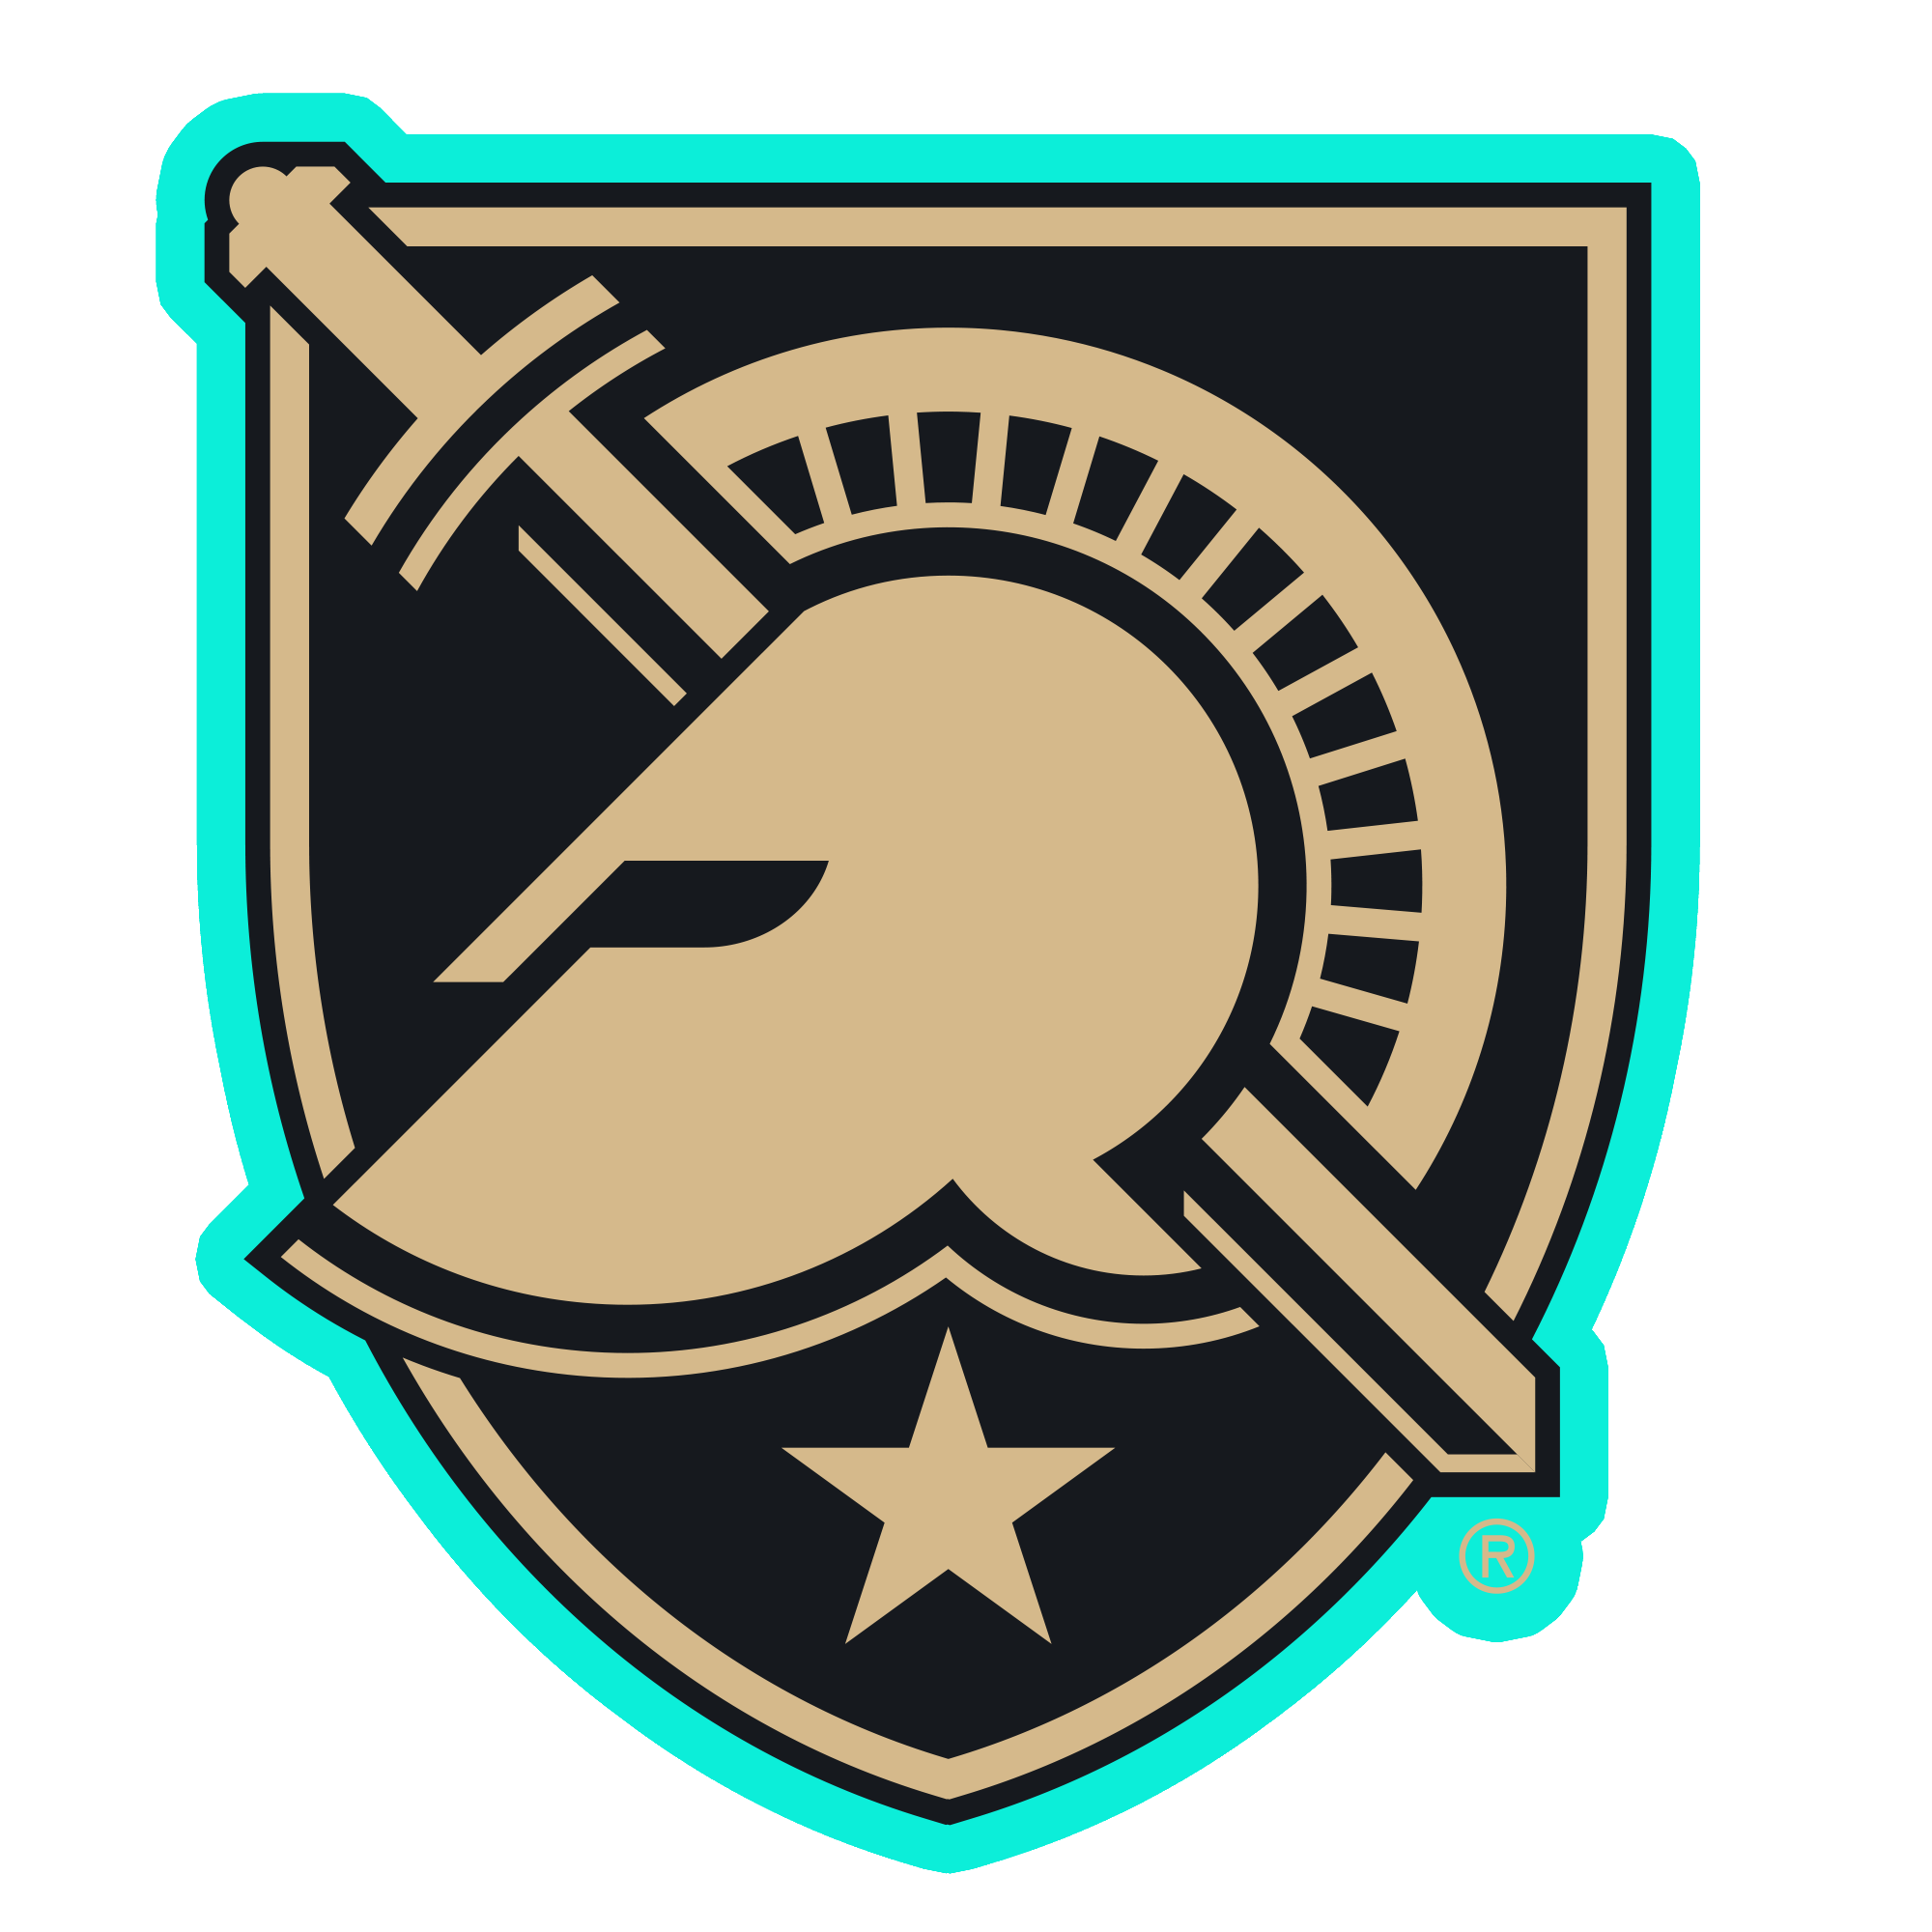 West Point esports logo